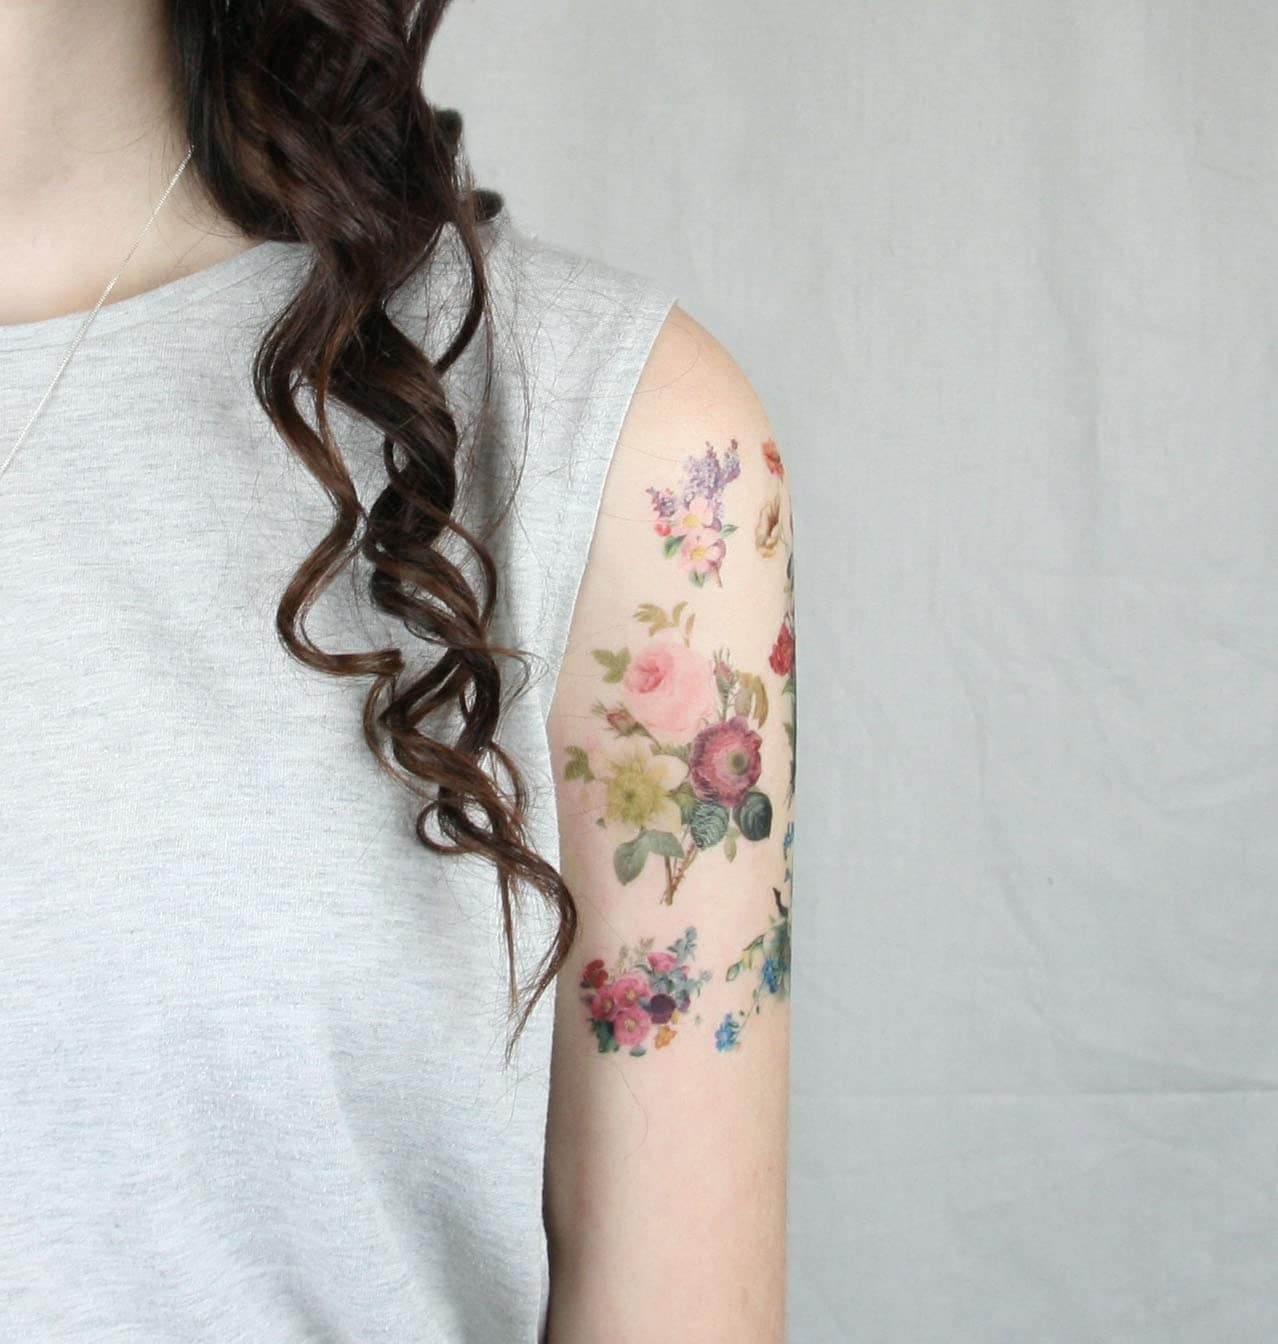 Temporary tattoo 7 vintage floral temporary tattoos floral for Vintage floral tattoo